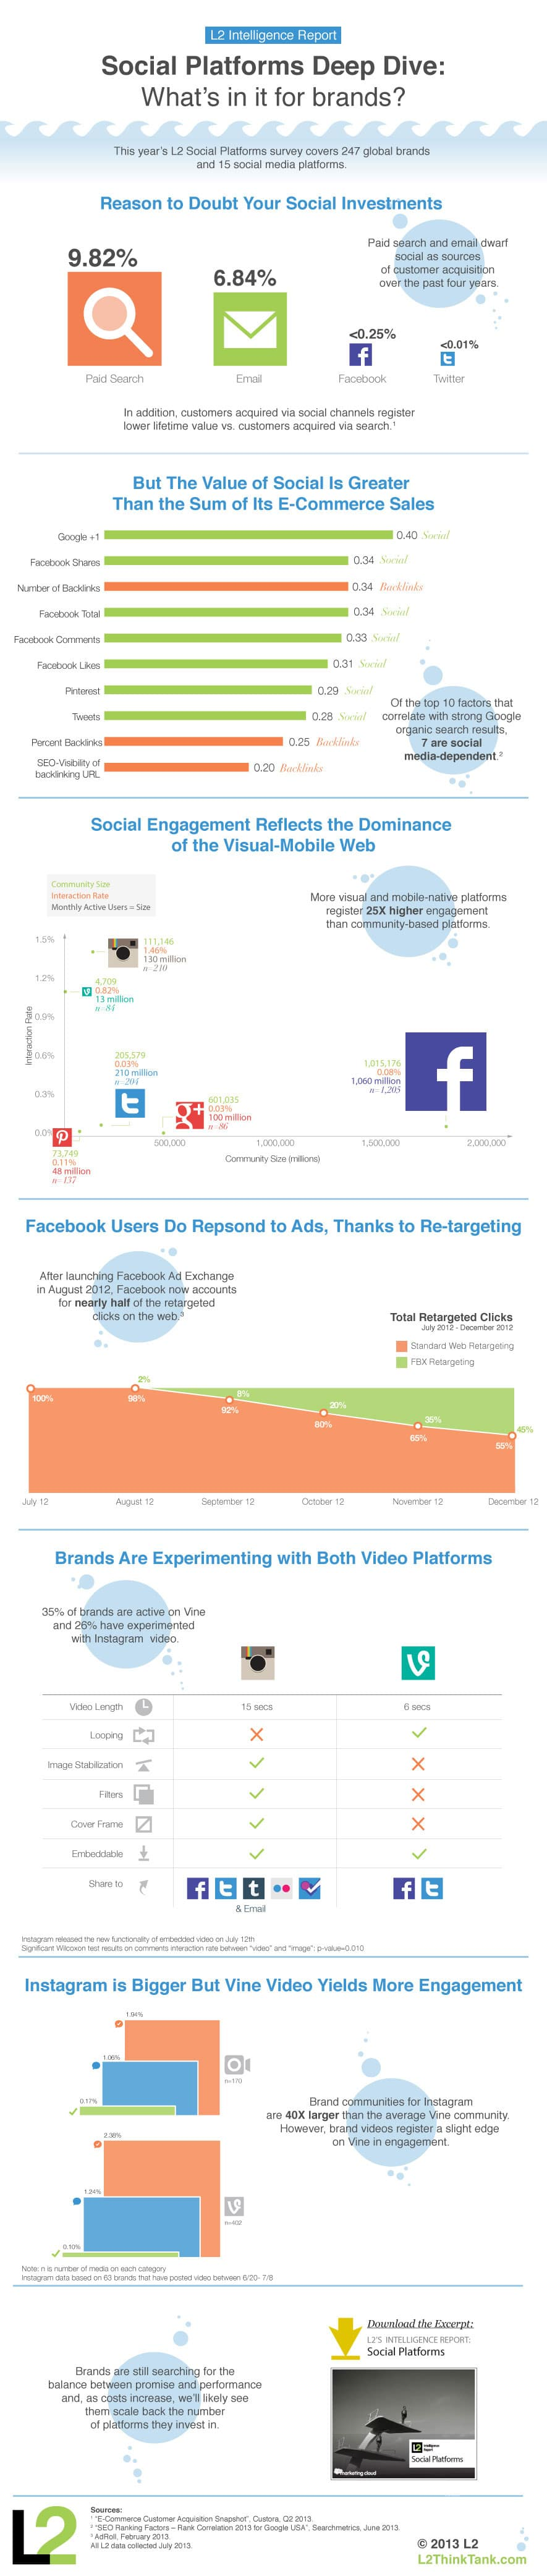 social-media-for-brands-infographic